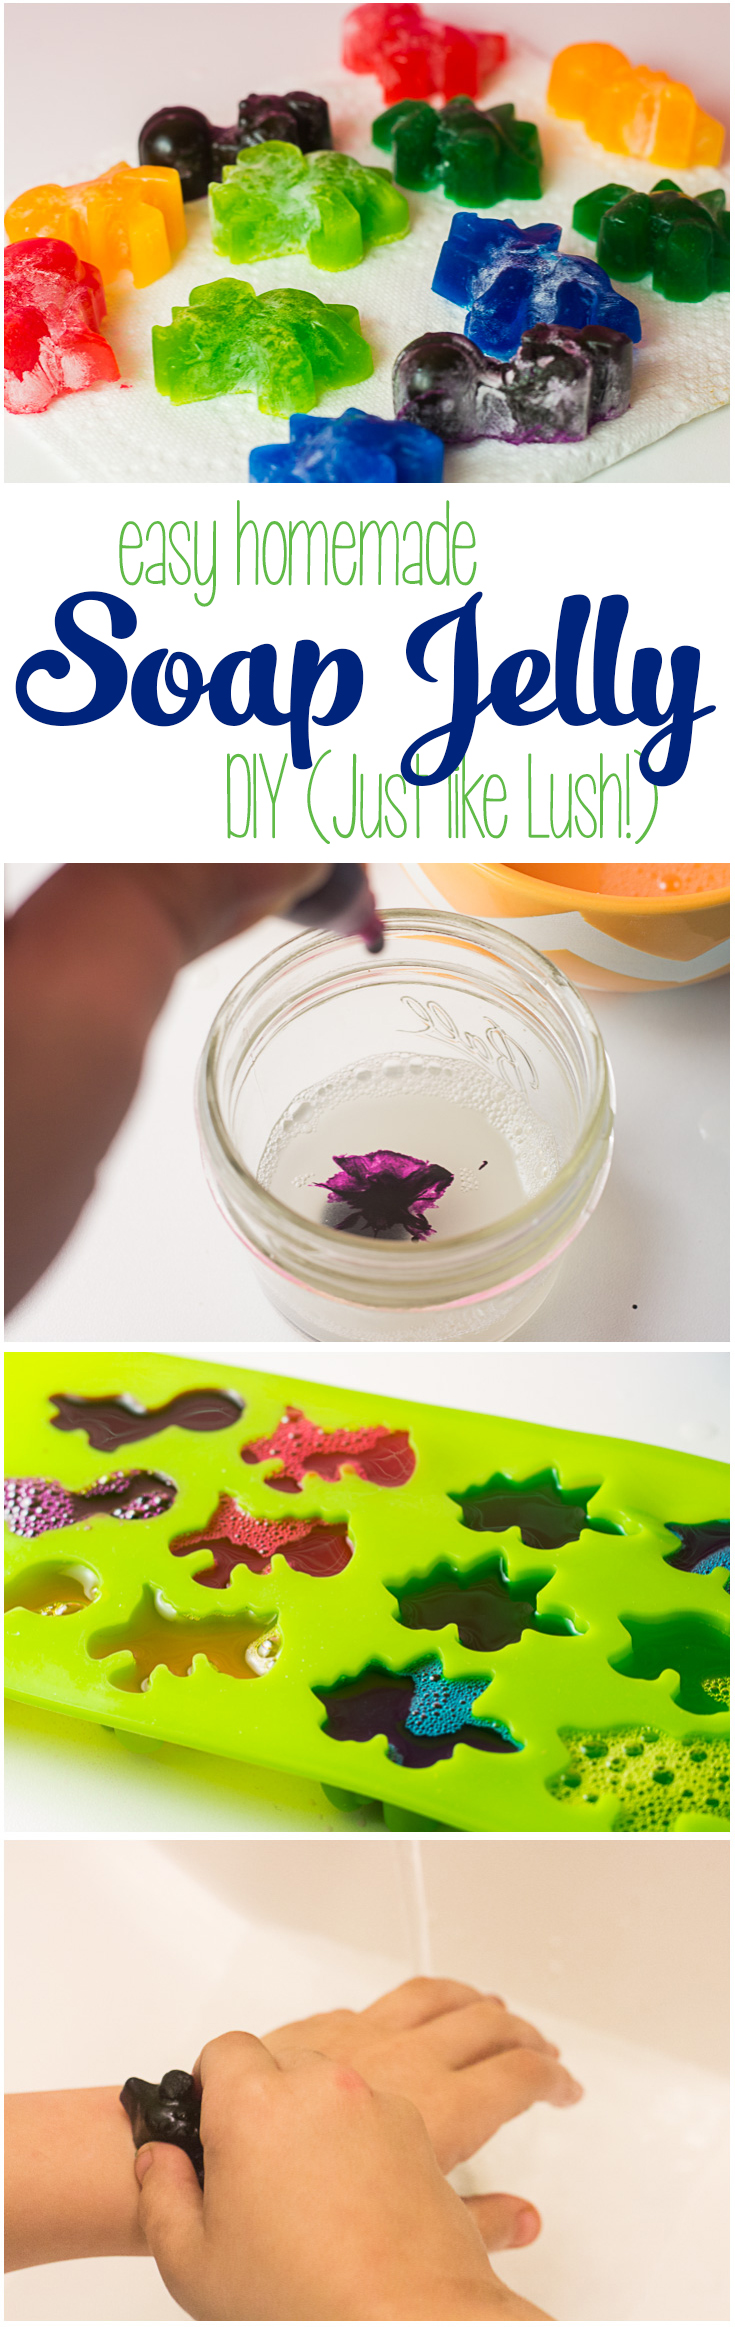 If you love Shower Jelly like the kind you find at LUSH, you'll love this easy-to-make DIY Soap Jelly that is as fun to make as it is to bathe with! It's nice and cool for showering off in the summertime, and a fun way to get clean after playing in the mud and dirt. What kid wouldn't love their own jelly soap? | DIY Soap Jelly | Jelly Soap Homemade | How to Make LUSH Shower Jelly |